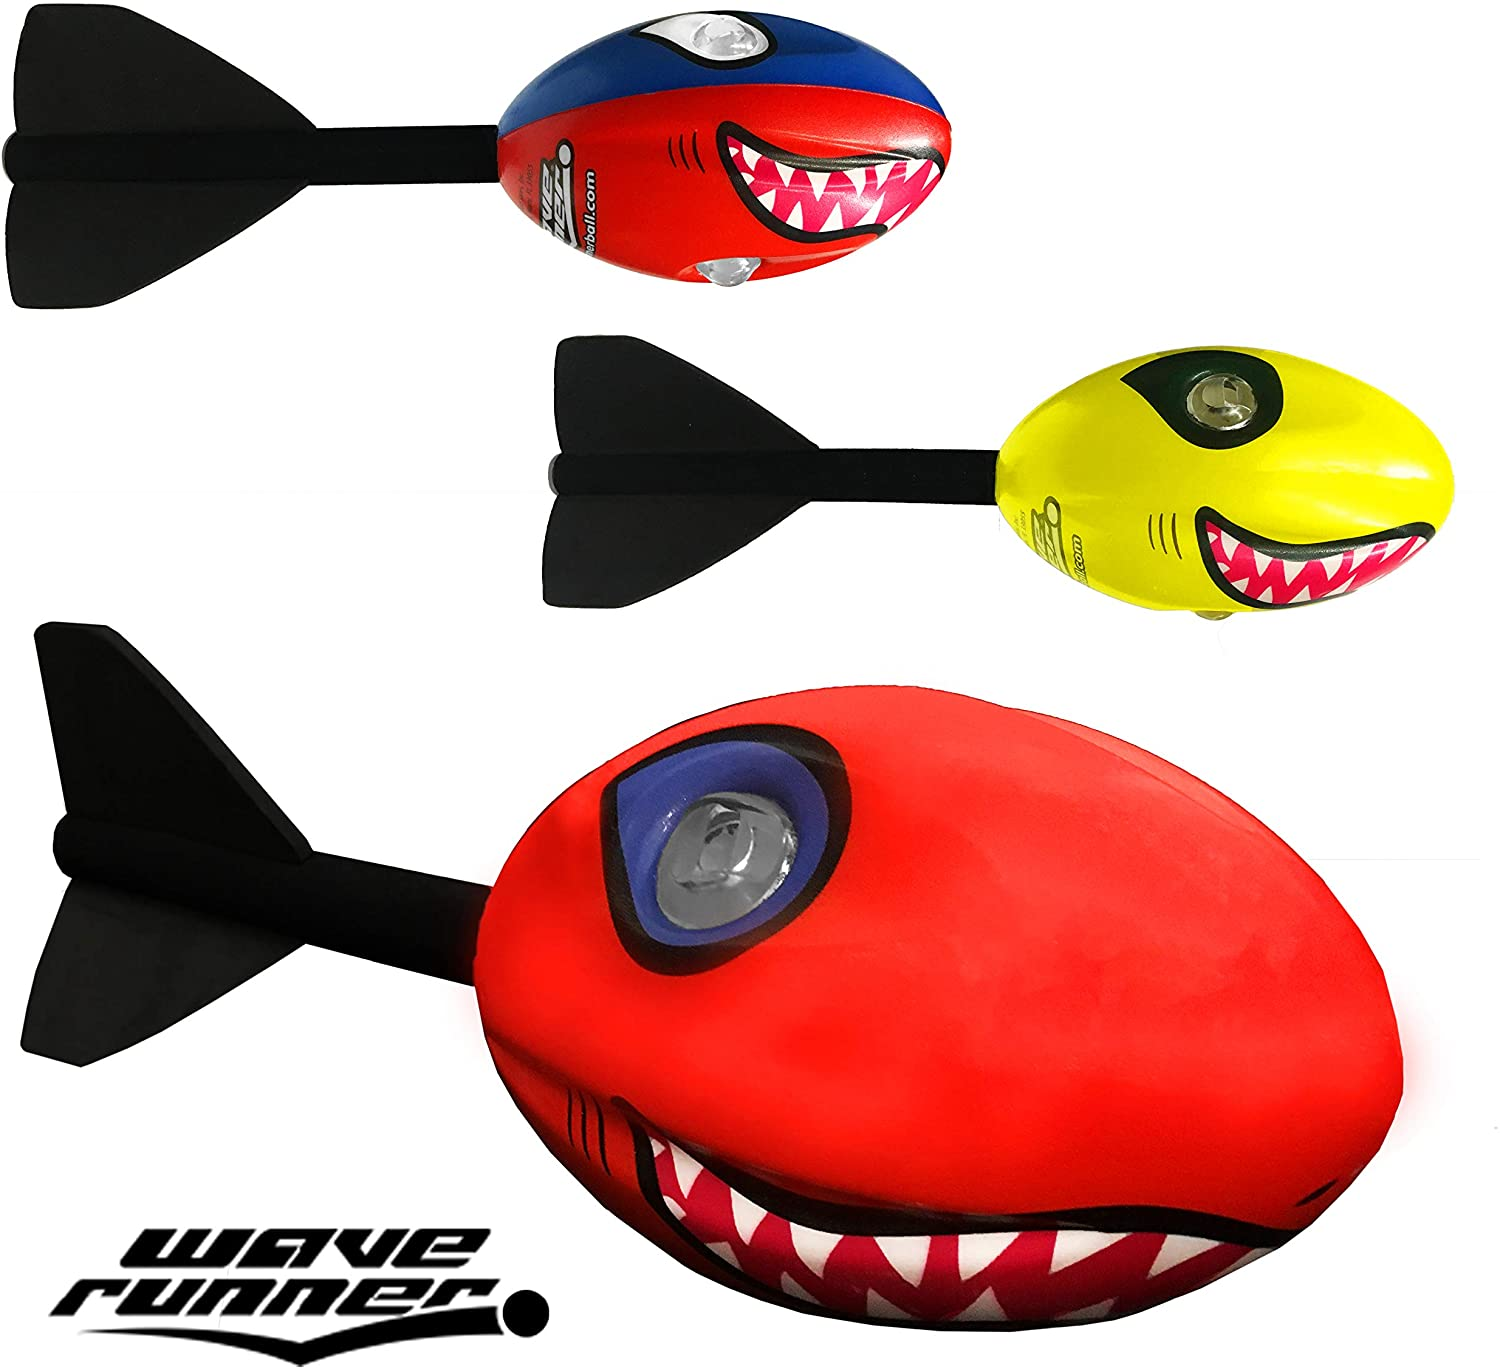 Wave Runner Bundle Shark Whistler Football with Tail Pack Now with Vortex Technology! Great Wholesaler Bulk Retailers